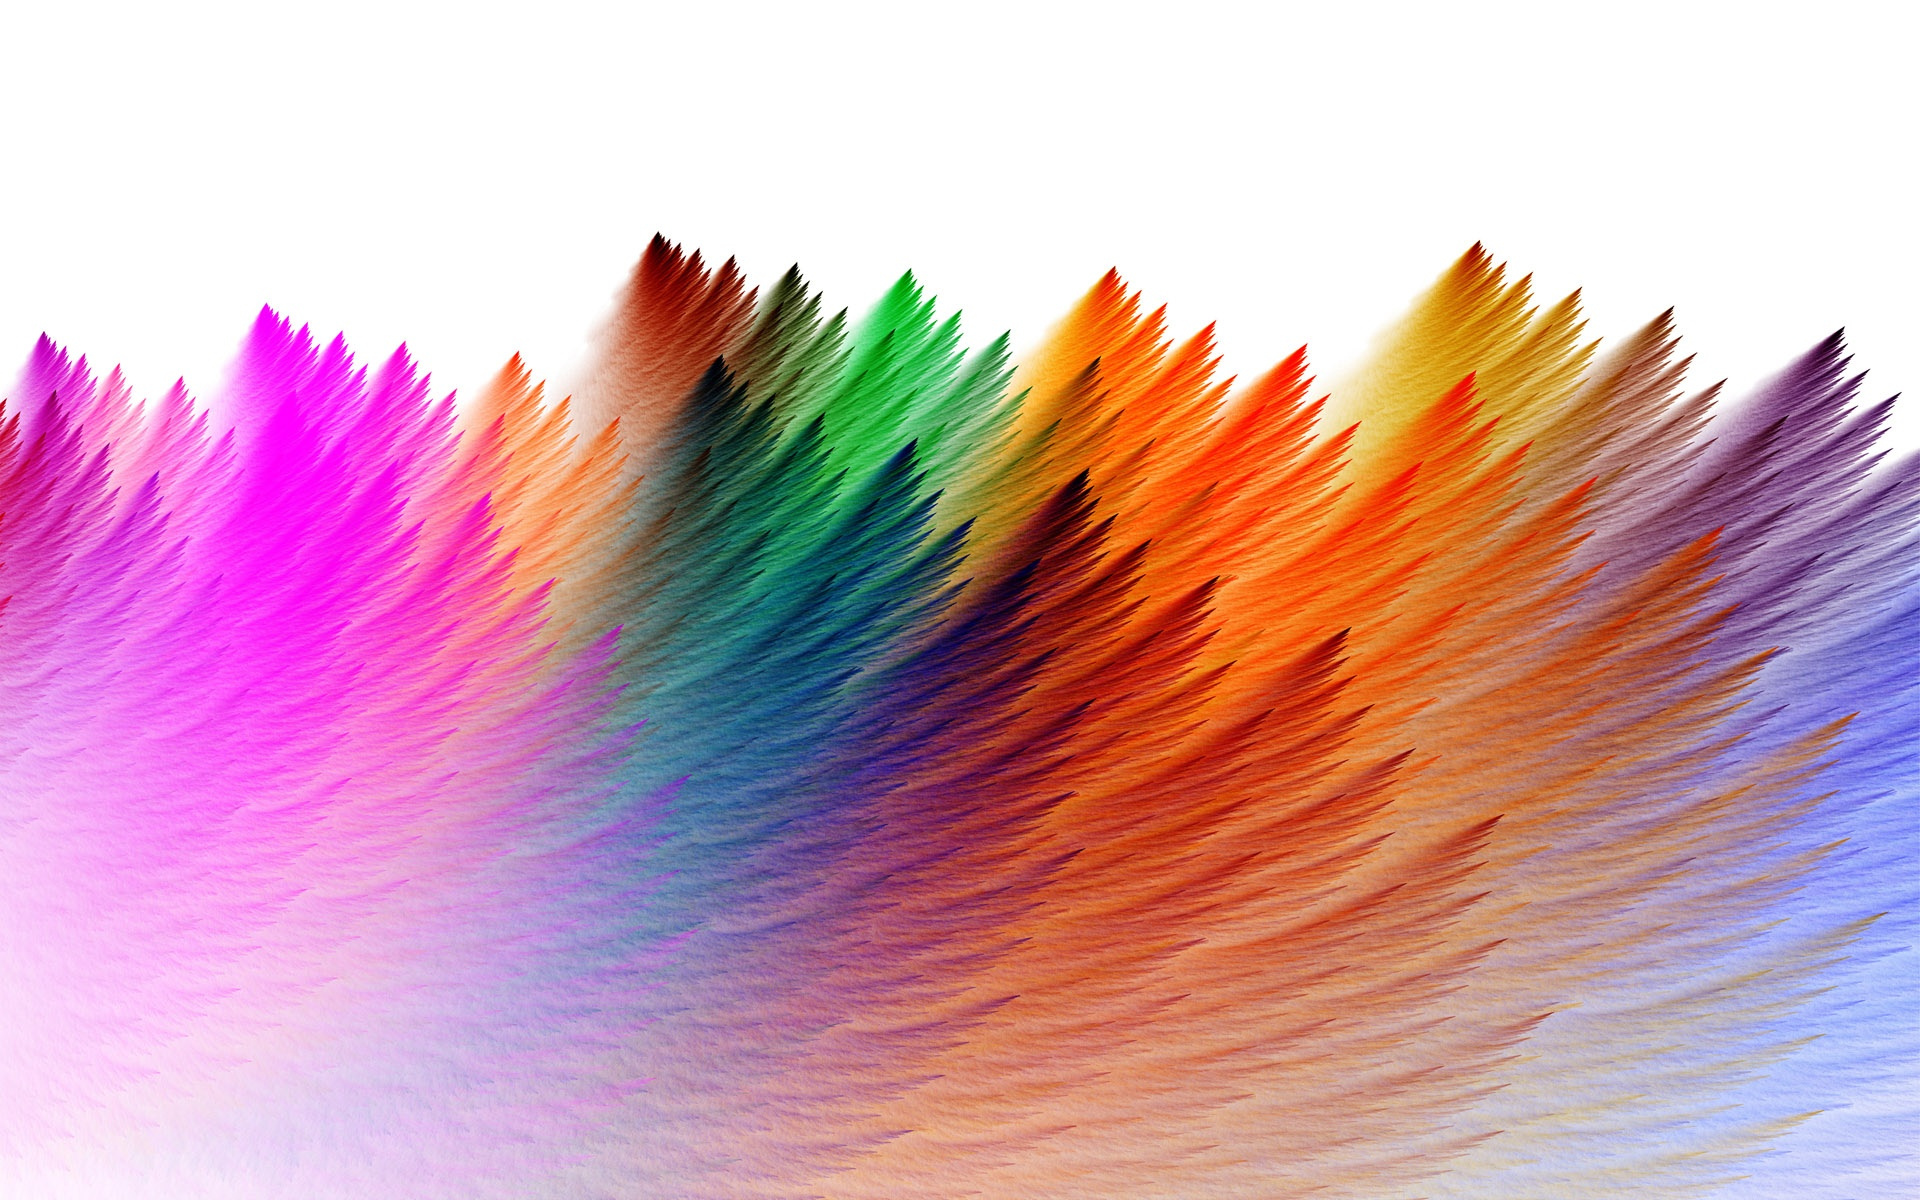 Colorful feathers abstract 1920 x 1200 download close